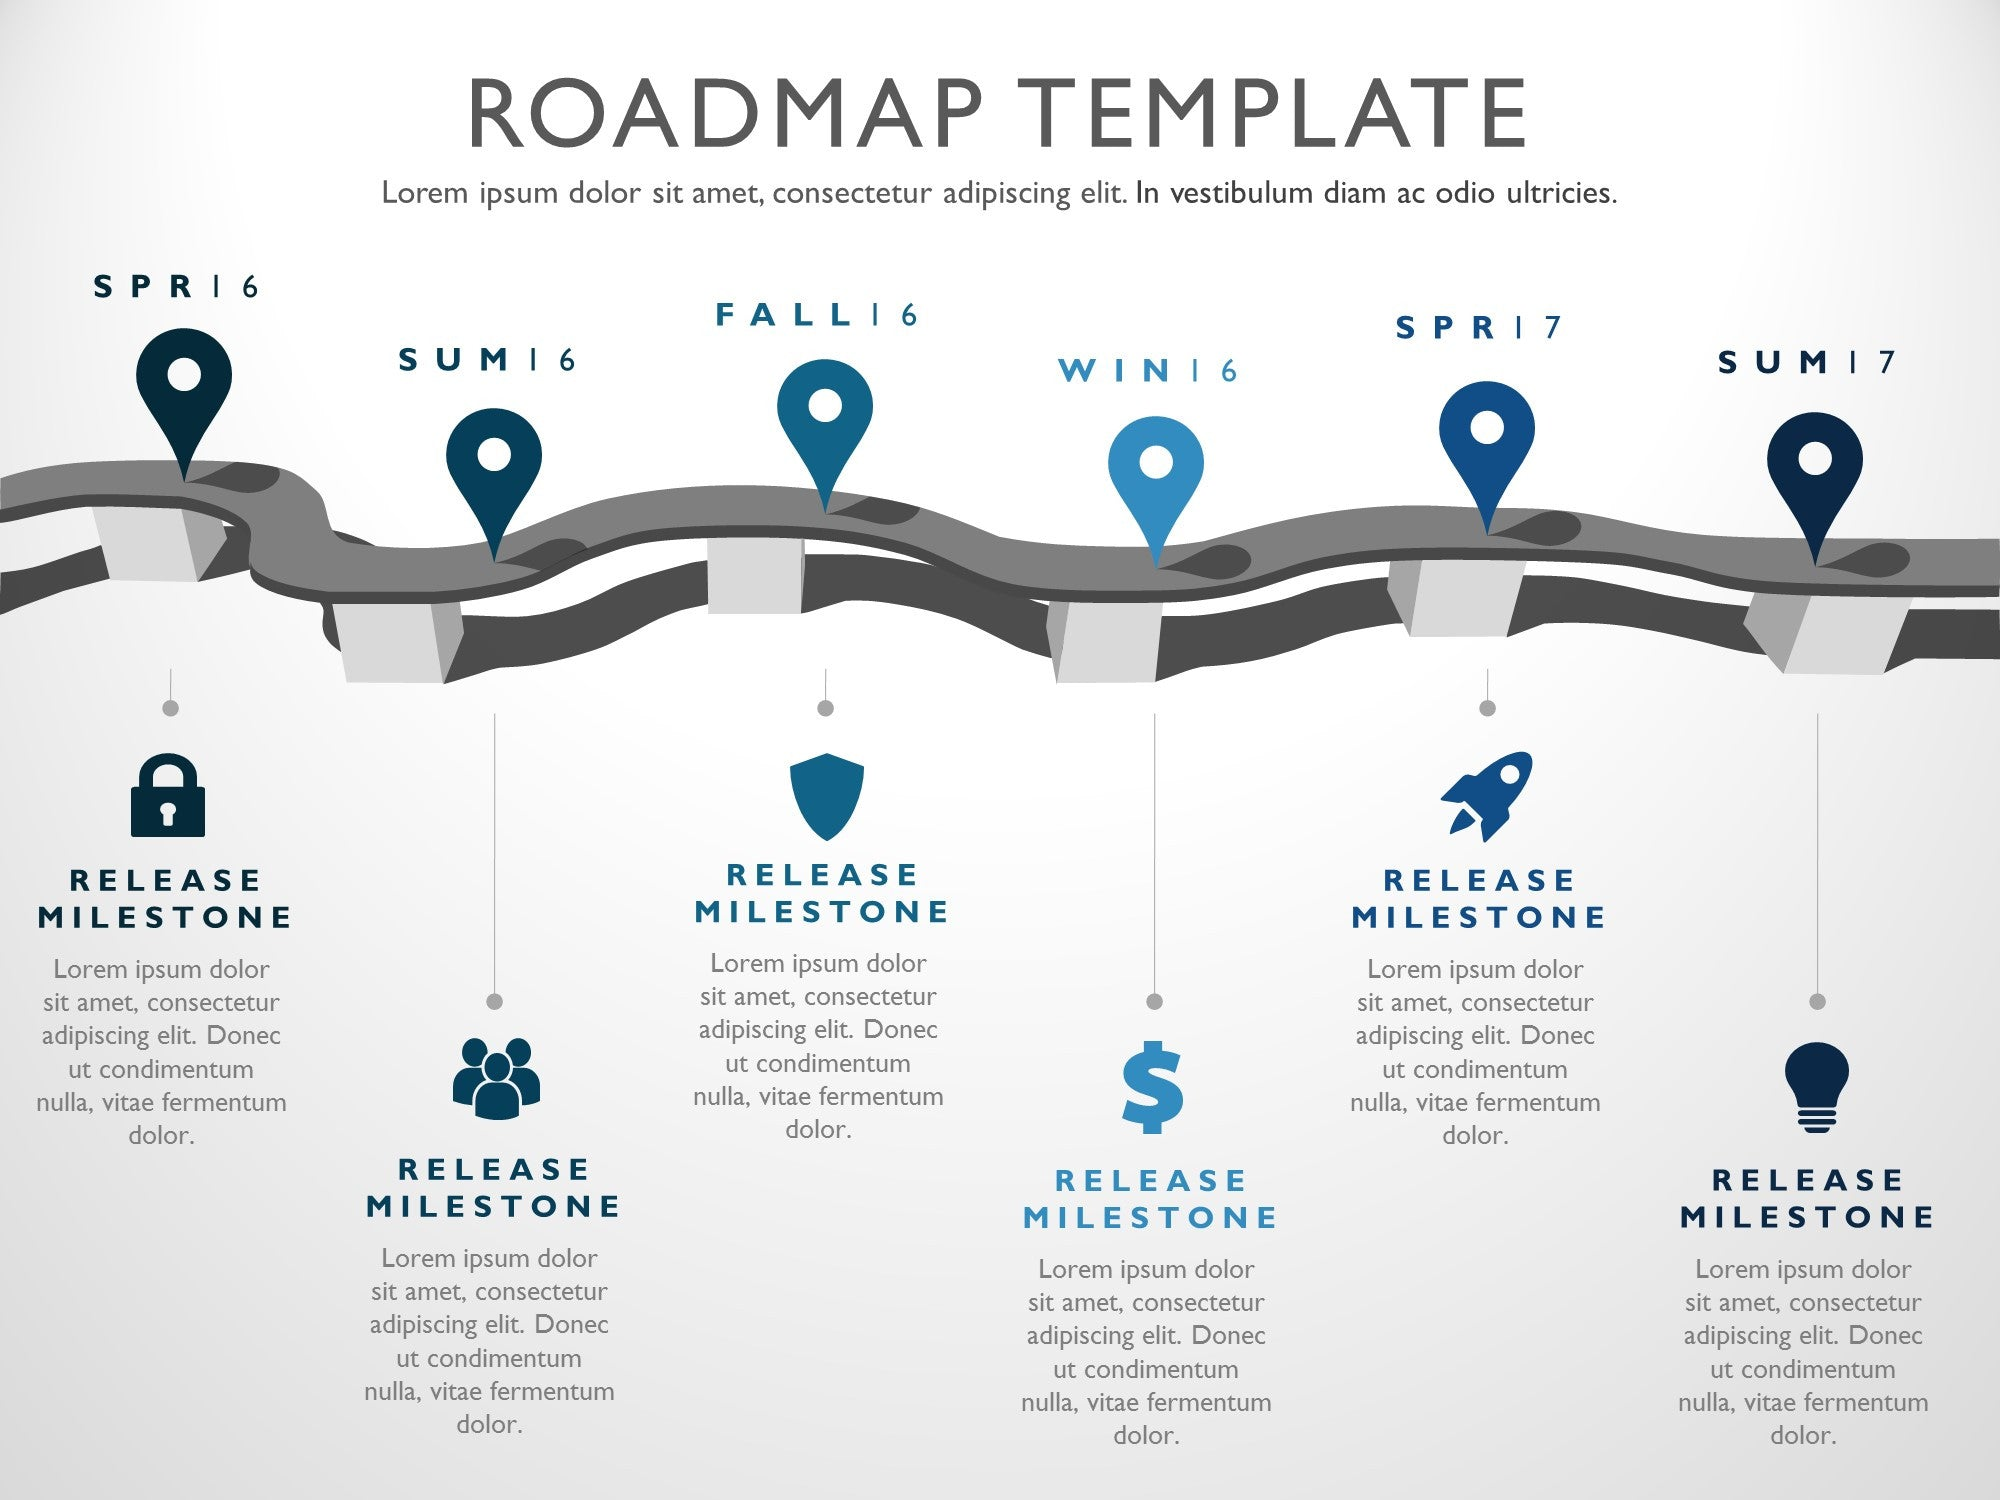 Six phase strategic product timeline roadmap presentation diagram product strategy development cycle planning timeline templates stages software management tools ppt manager marketing roadmap template toneelgroepblik Choice Image